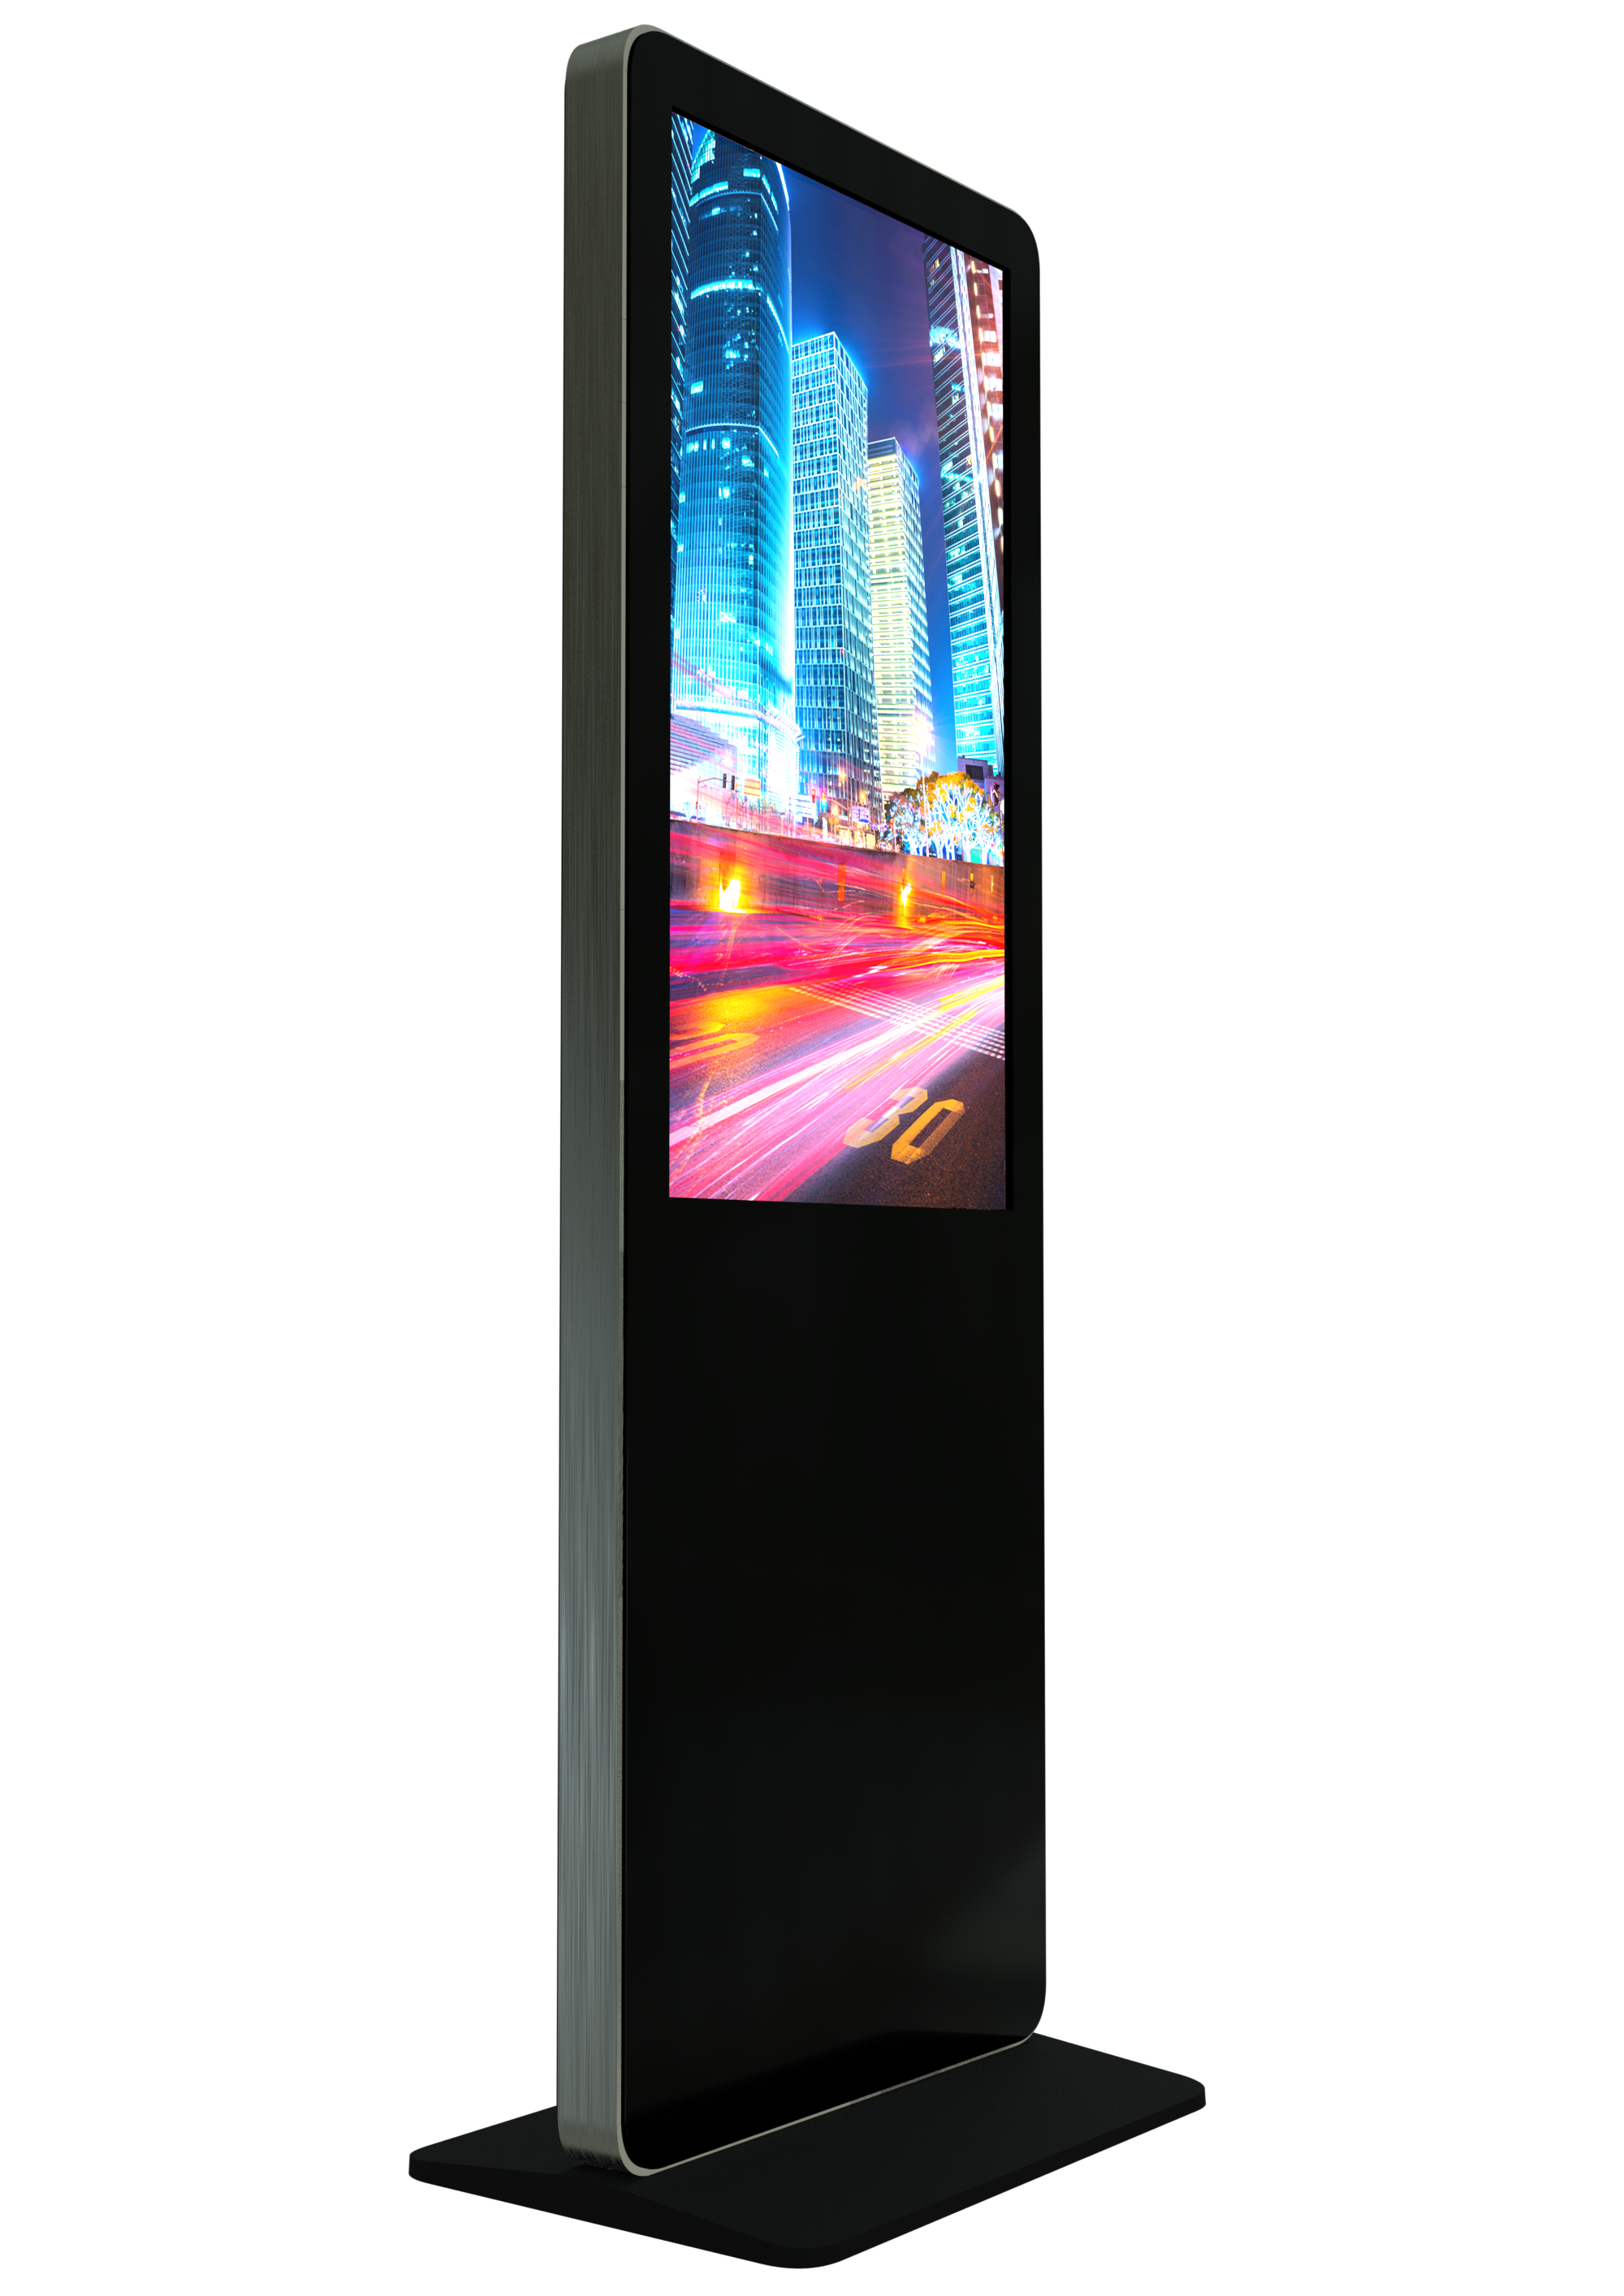 Giant Android Hire - Giant android screens are able to incorporate our AI digital signage software platform……read more